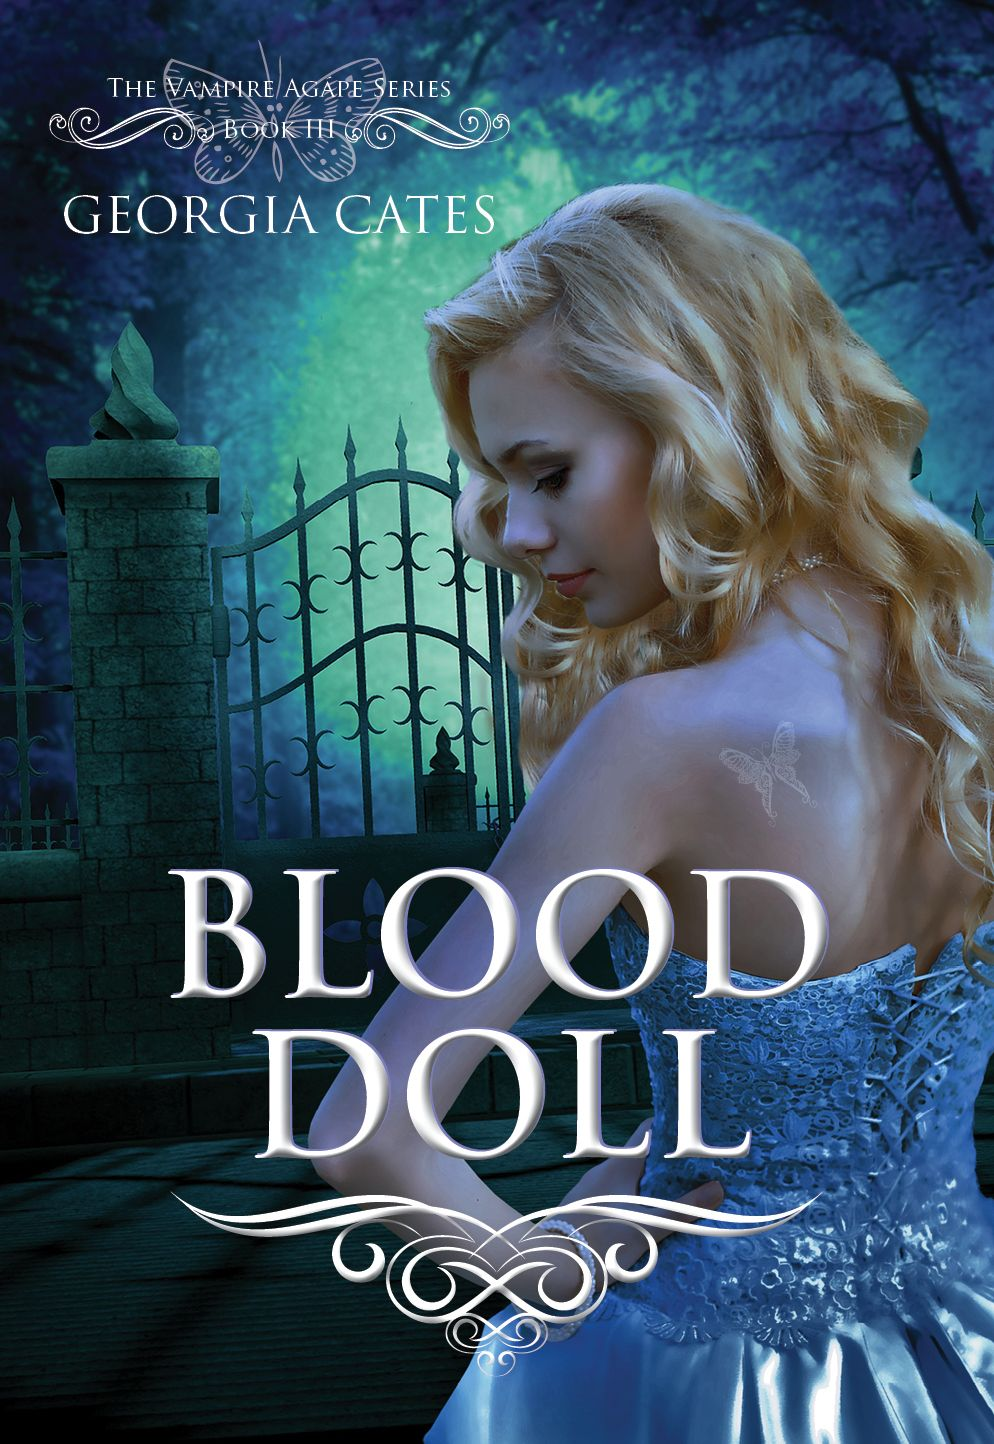 Blood doll (The Vampire Agápe Series #3) de Georgia Cates